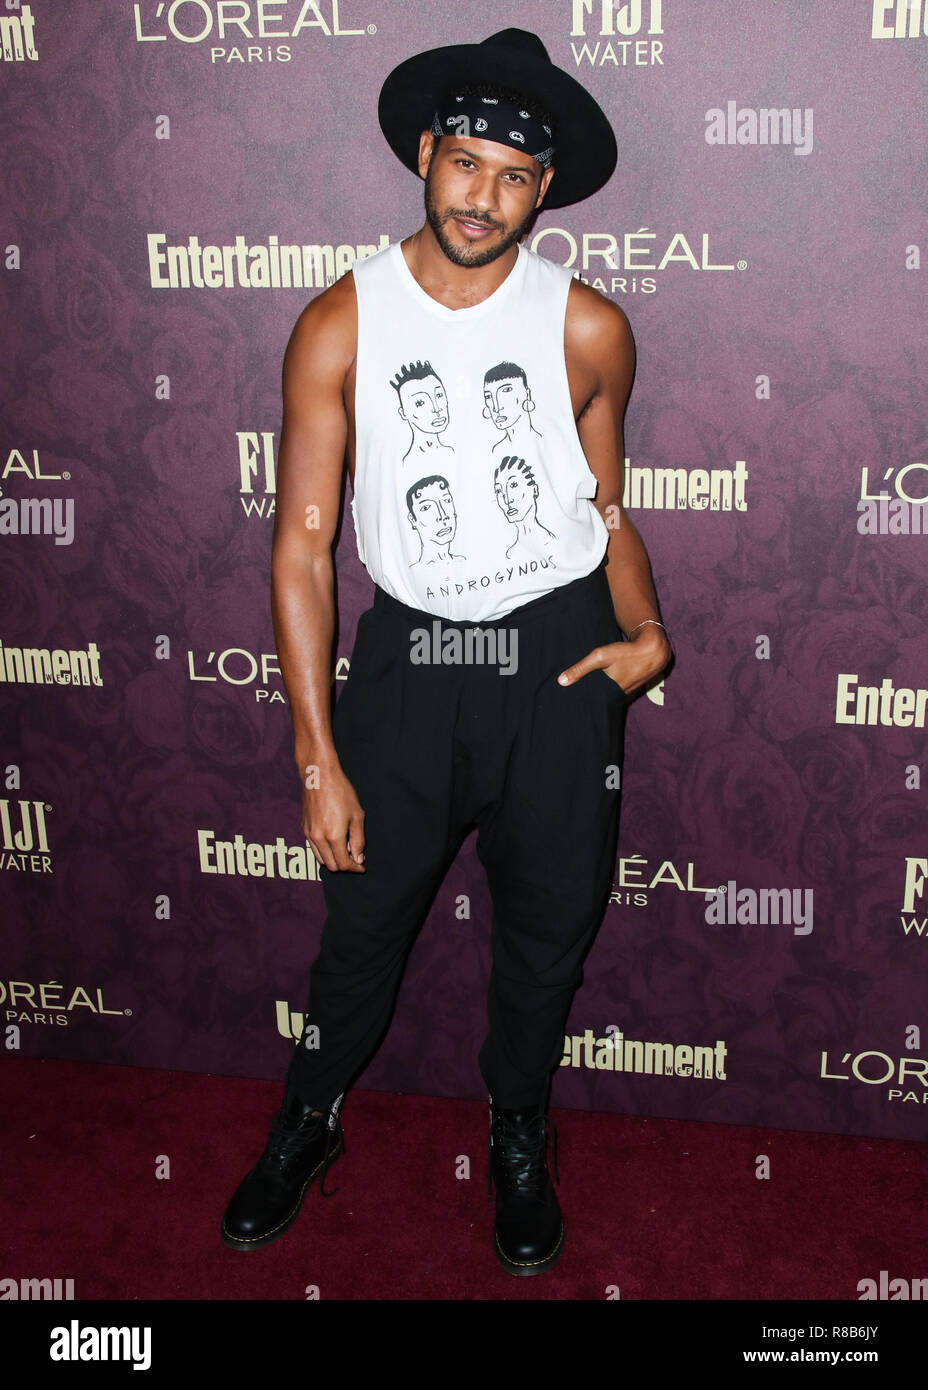 WEST HOLLYWOOD, LOS ANGELES, CA, USA - SEPTEMBER 15: Jeffrey Bowyer Chapman at the 2018 Entertainment Weekly Pre-Emmy Party held at the Sunset Tower Hotel on September 15, 2018 in West Hollywood, Los Angeles, California, United States. (Photo by Xavier Collin/Image Press Agency) Stock Photo